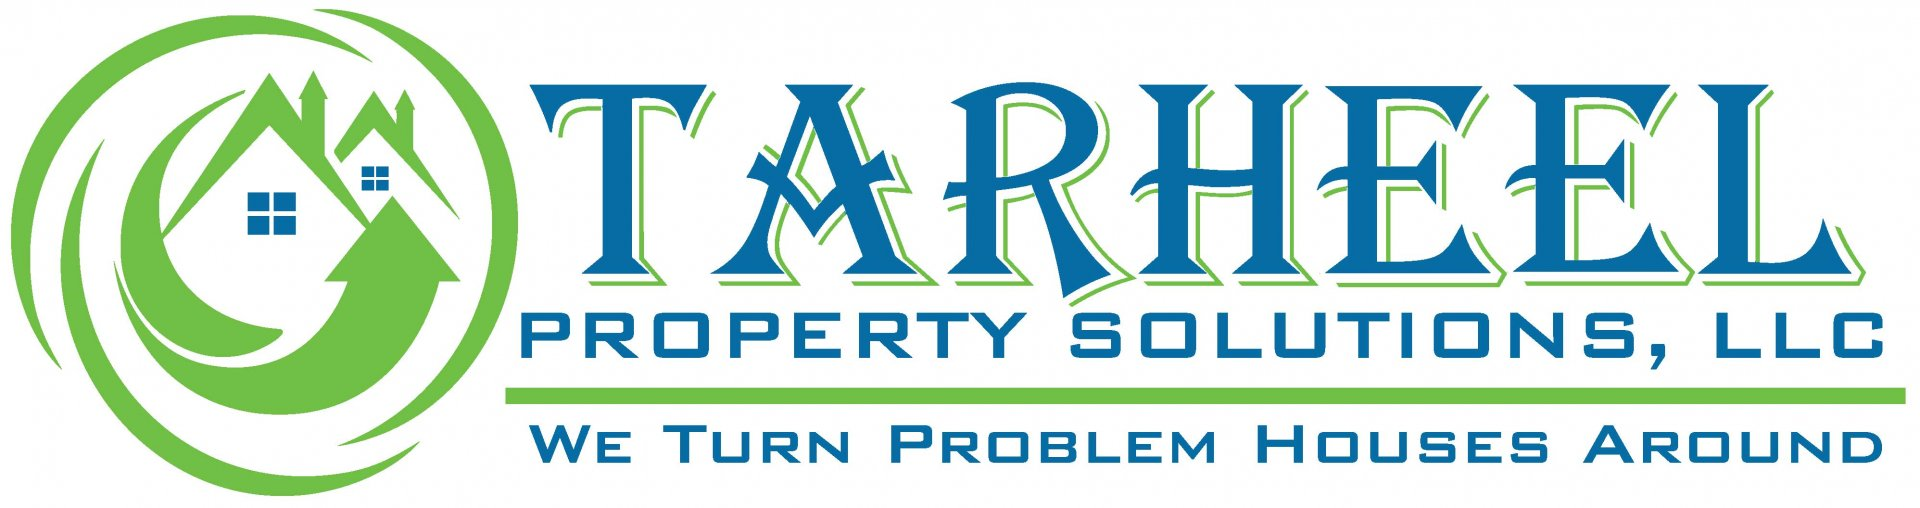 Tarheel Property Solutions, LLC logo